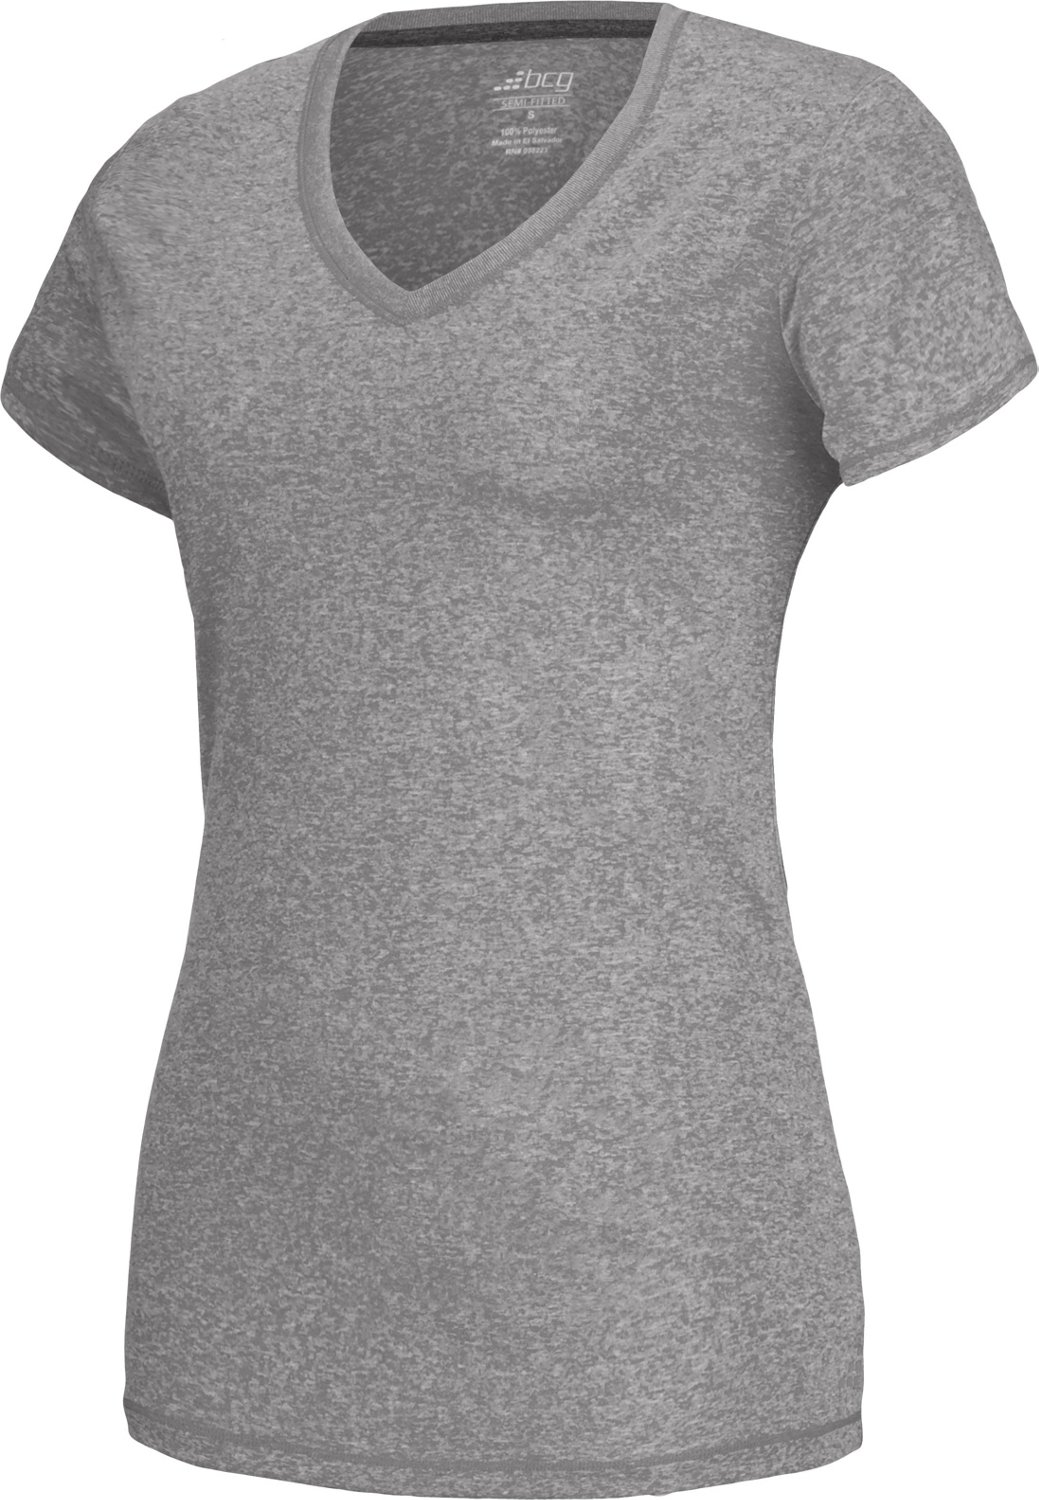 d89281c3 Display product reviews for BCG Women's Heather V-neck Training Tech T-shirt